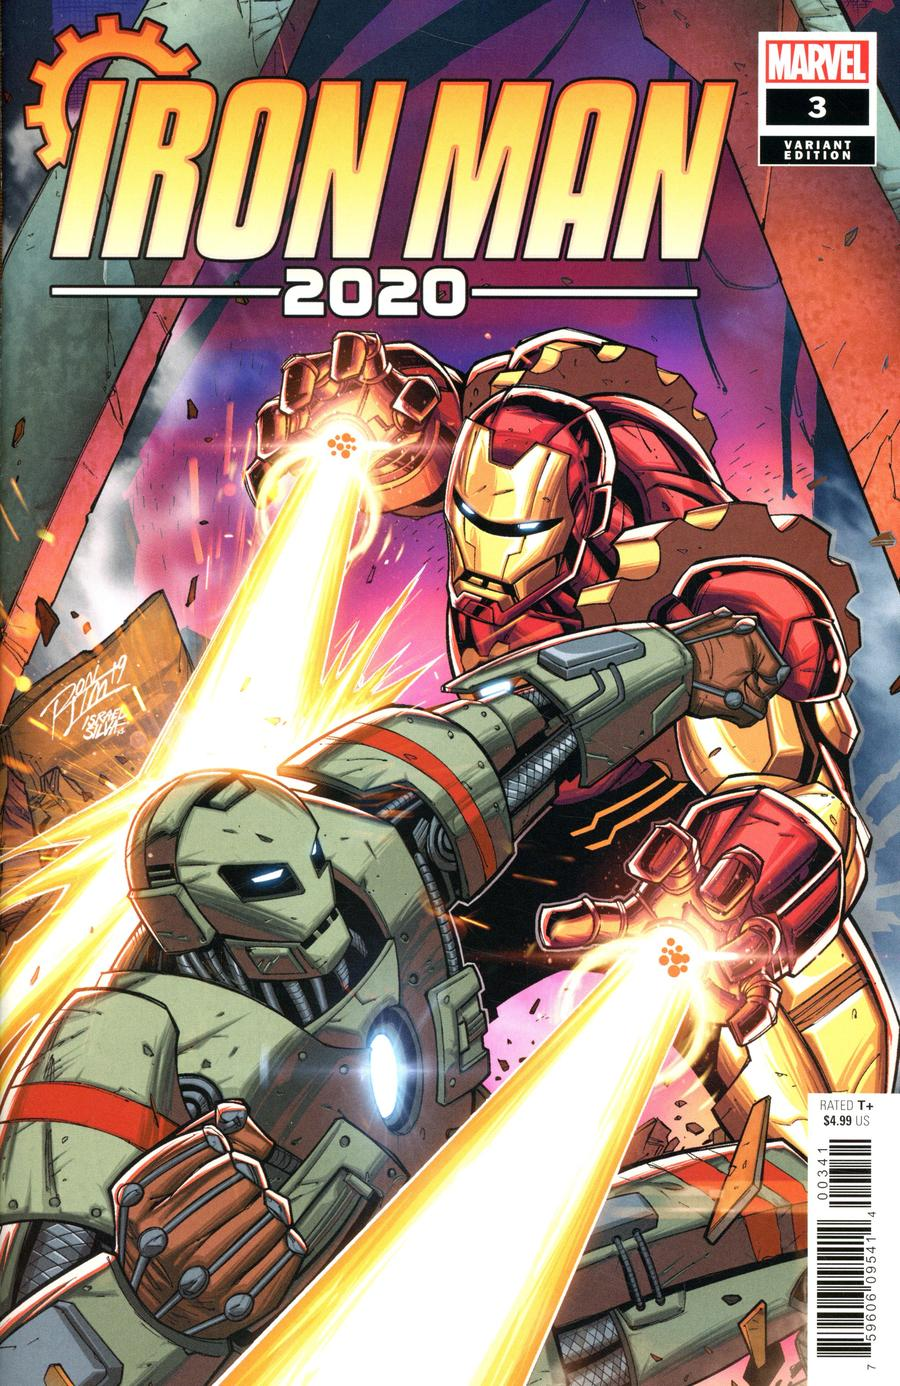 Iron Man 2020 #3 Cover D Variant Ron Lim Cover